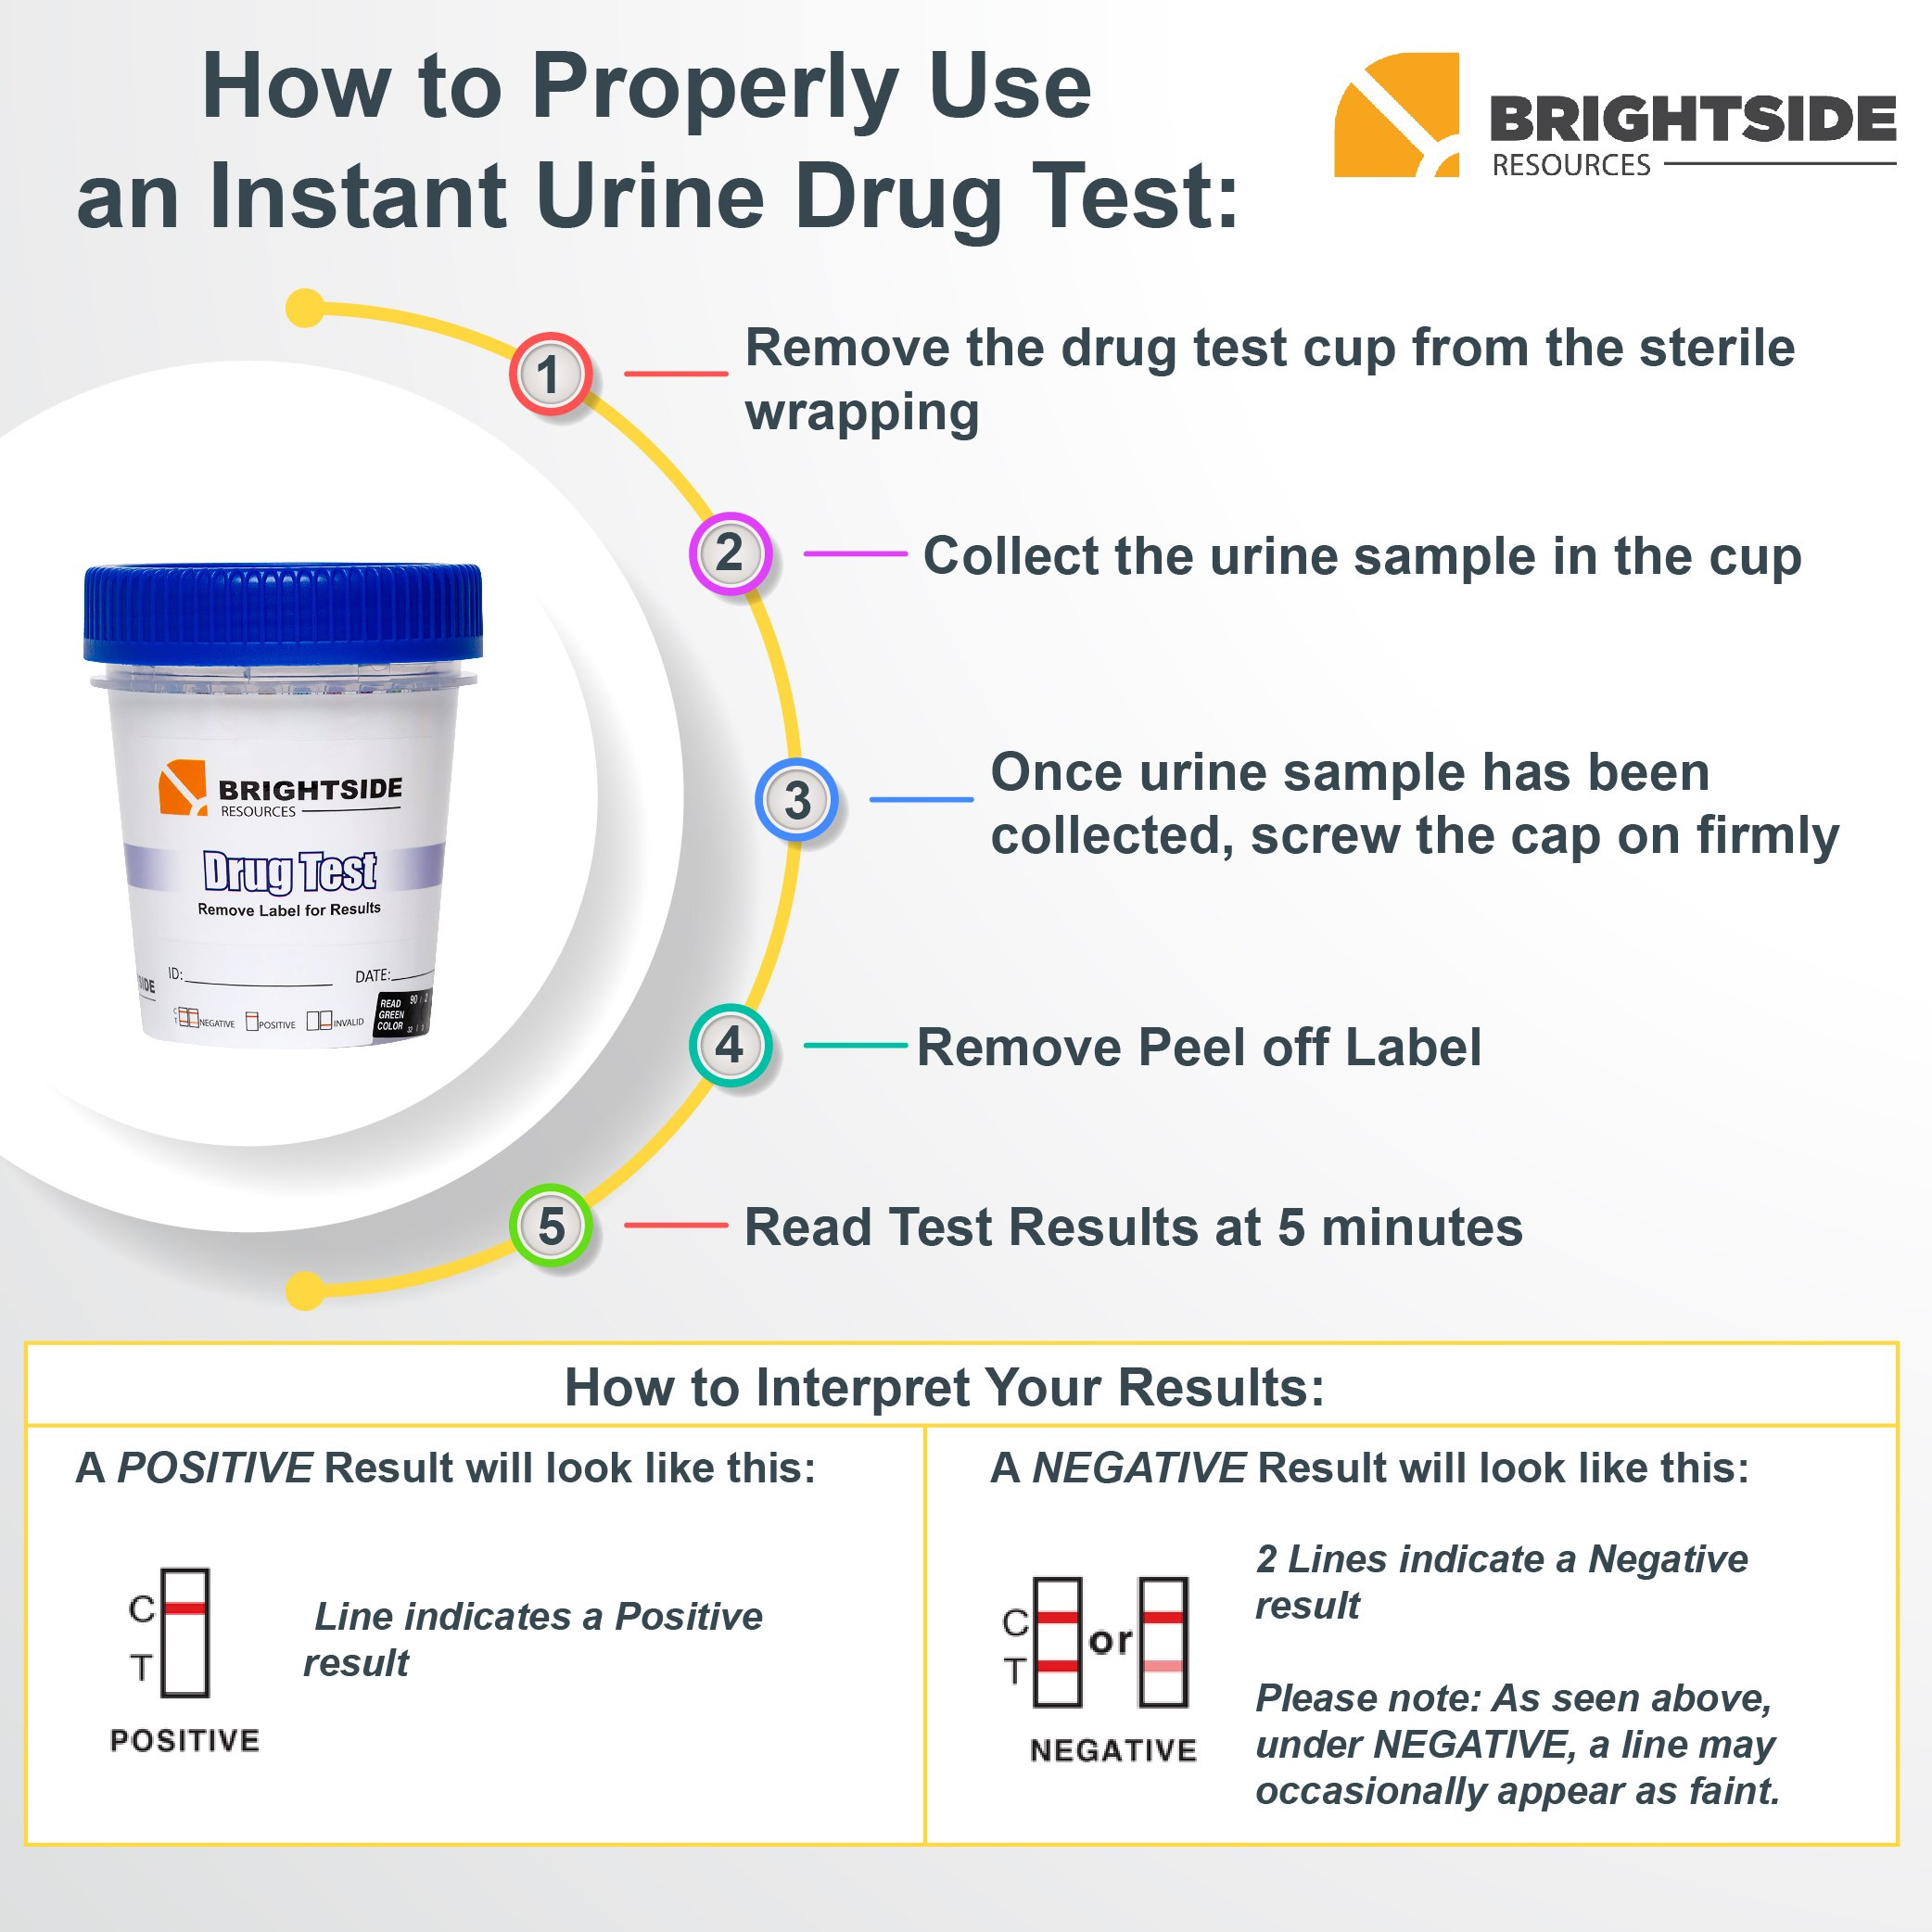 Brightside Resources 12 Panel Instant Urine Drug Test - Pack of 5 - for at Home & Medical Use - Accurate & Easy to Understand - THC, COC, OPI, OXY, Bar, TCA, MET, BZO, AMP, MDMA, BUP, Methadone by Brightside Resources (Image #5)